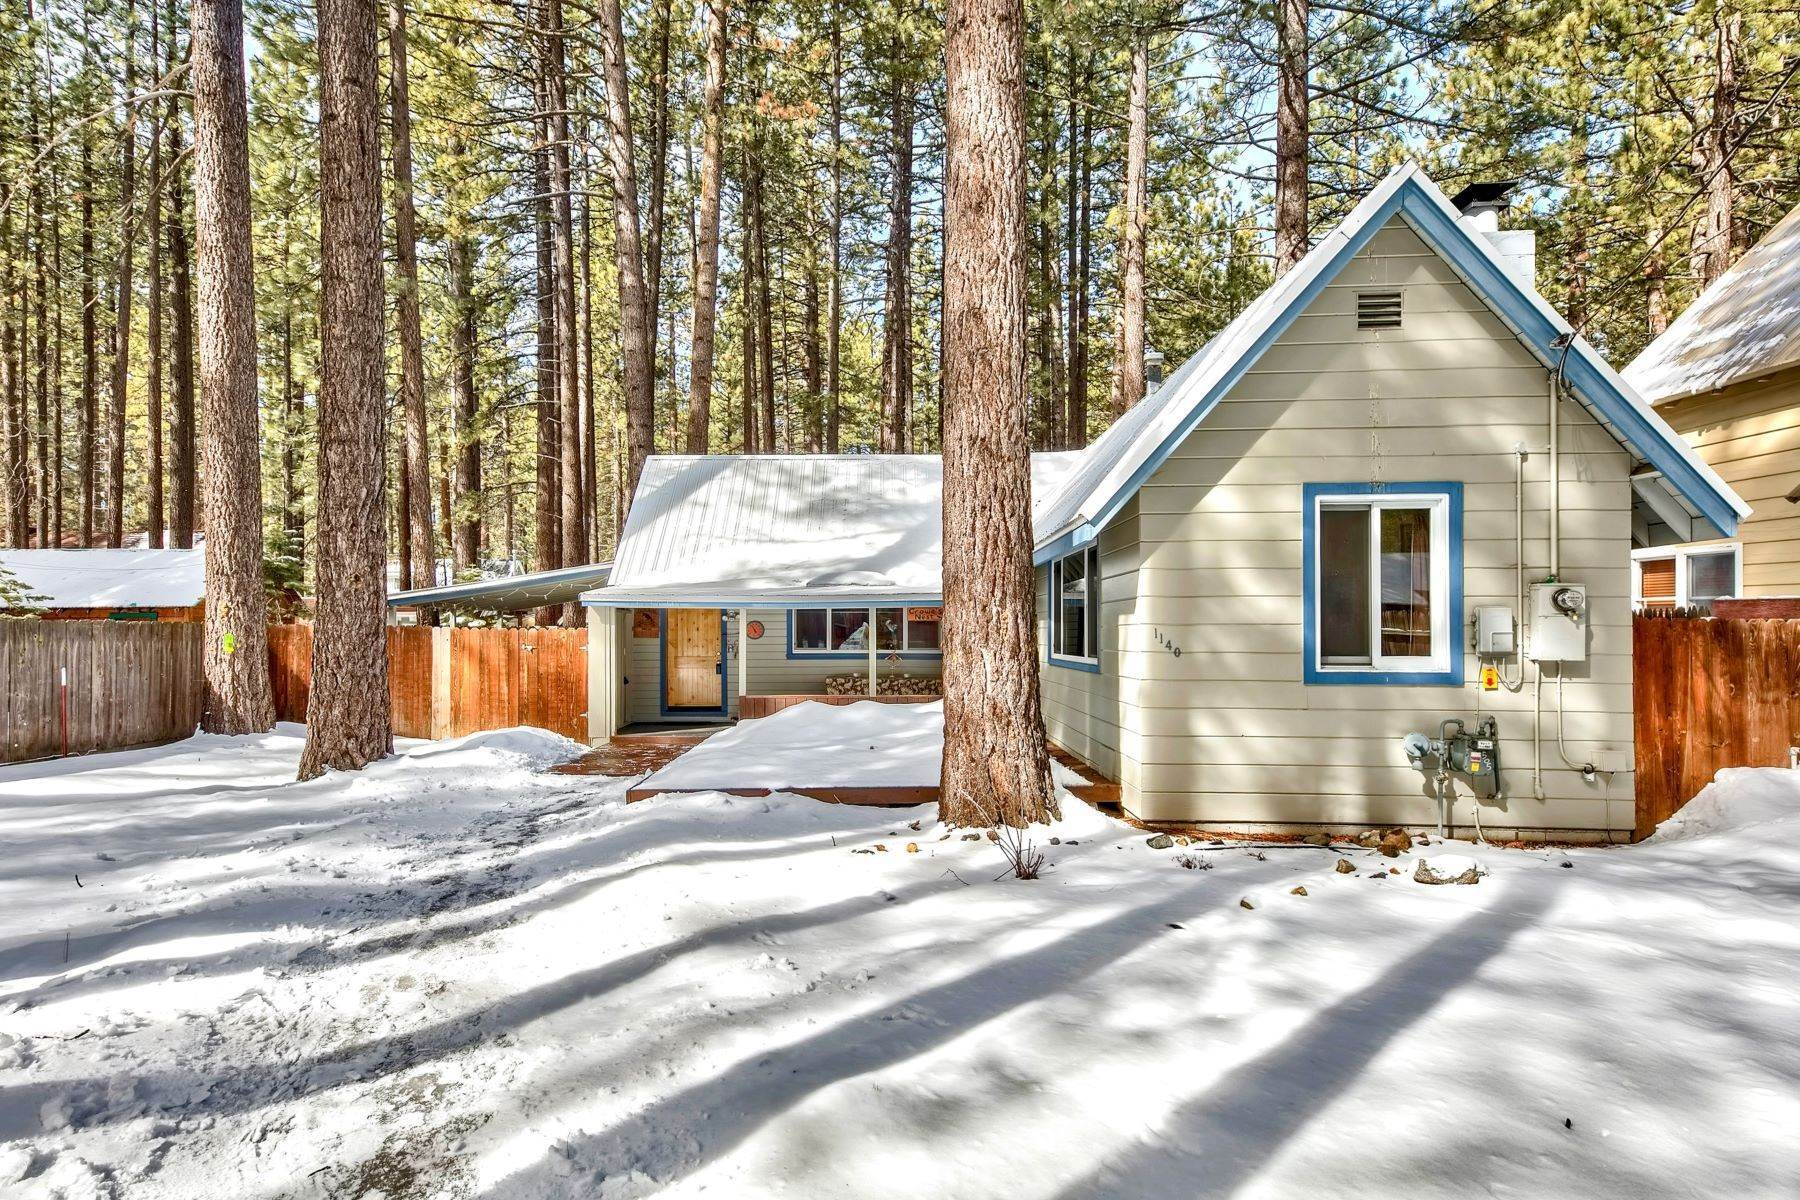 Single Family Homes for Active at Sweet Tahoe Cabin 1140 Long Valley Ave, South Lake Tahoe, California 96150 United States